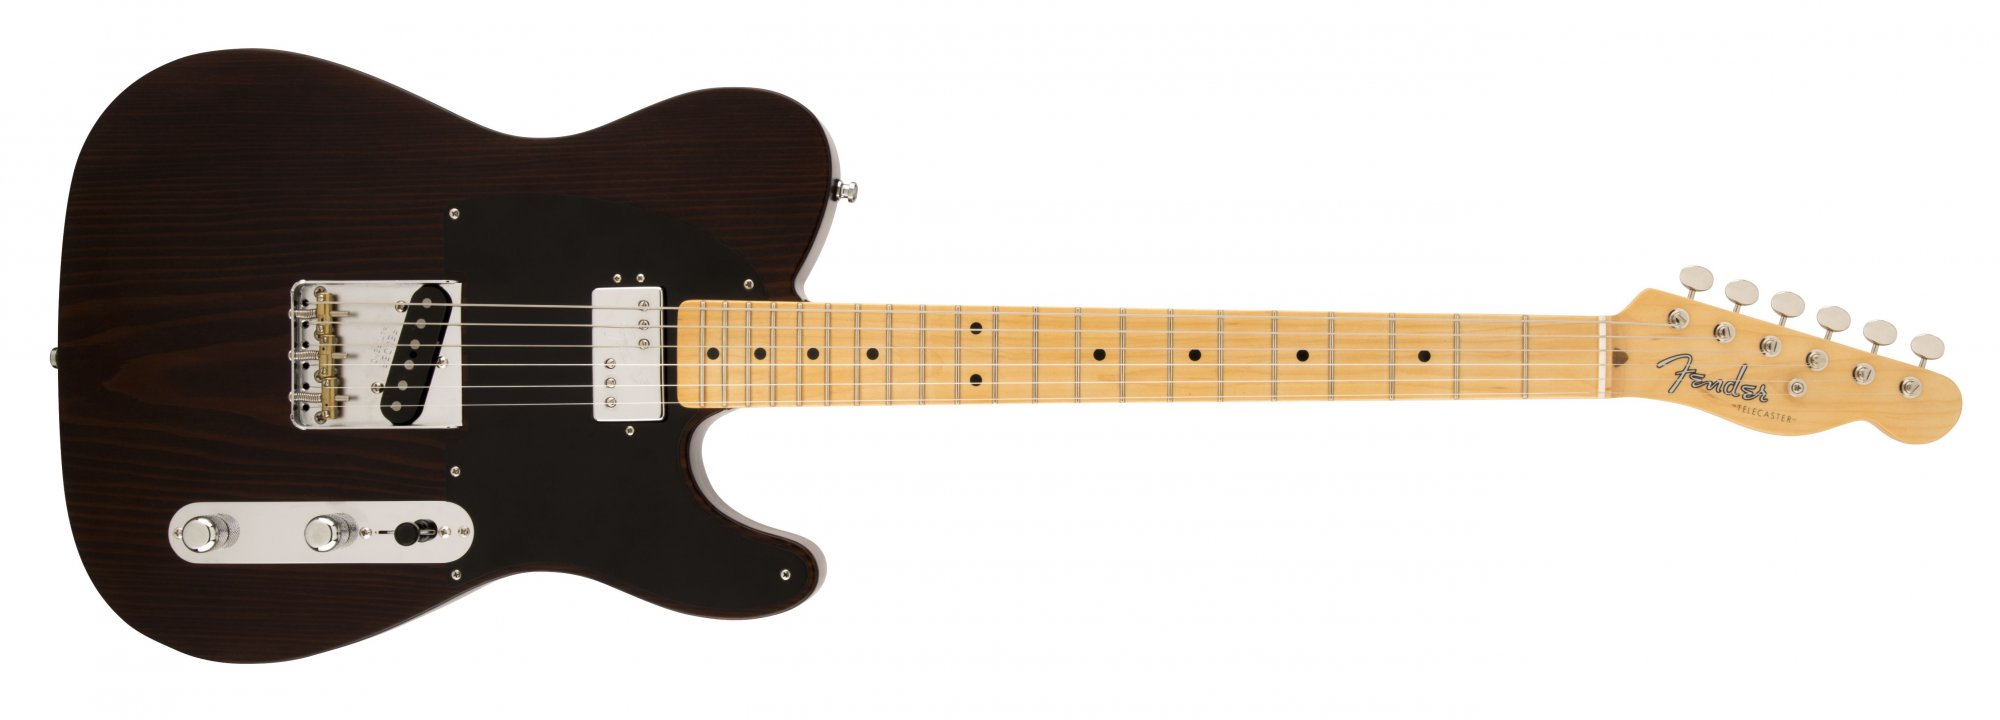 Fender Limited Edition 50's Hot Rod Reclaimed Redwood Telecaster B STOCK